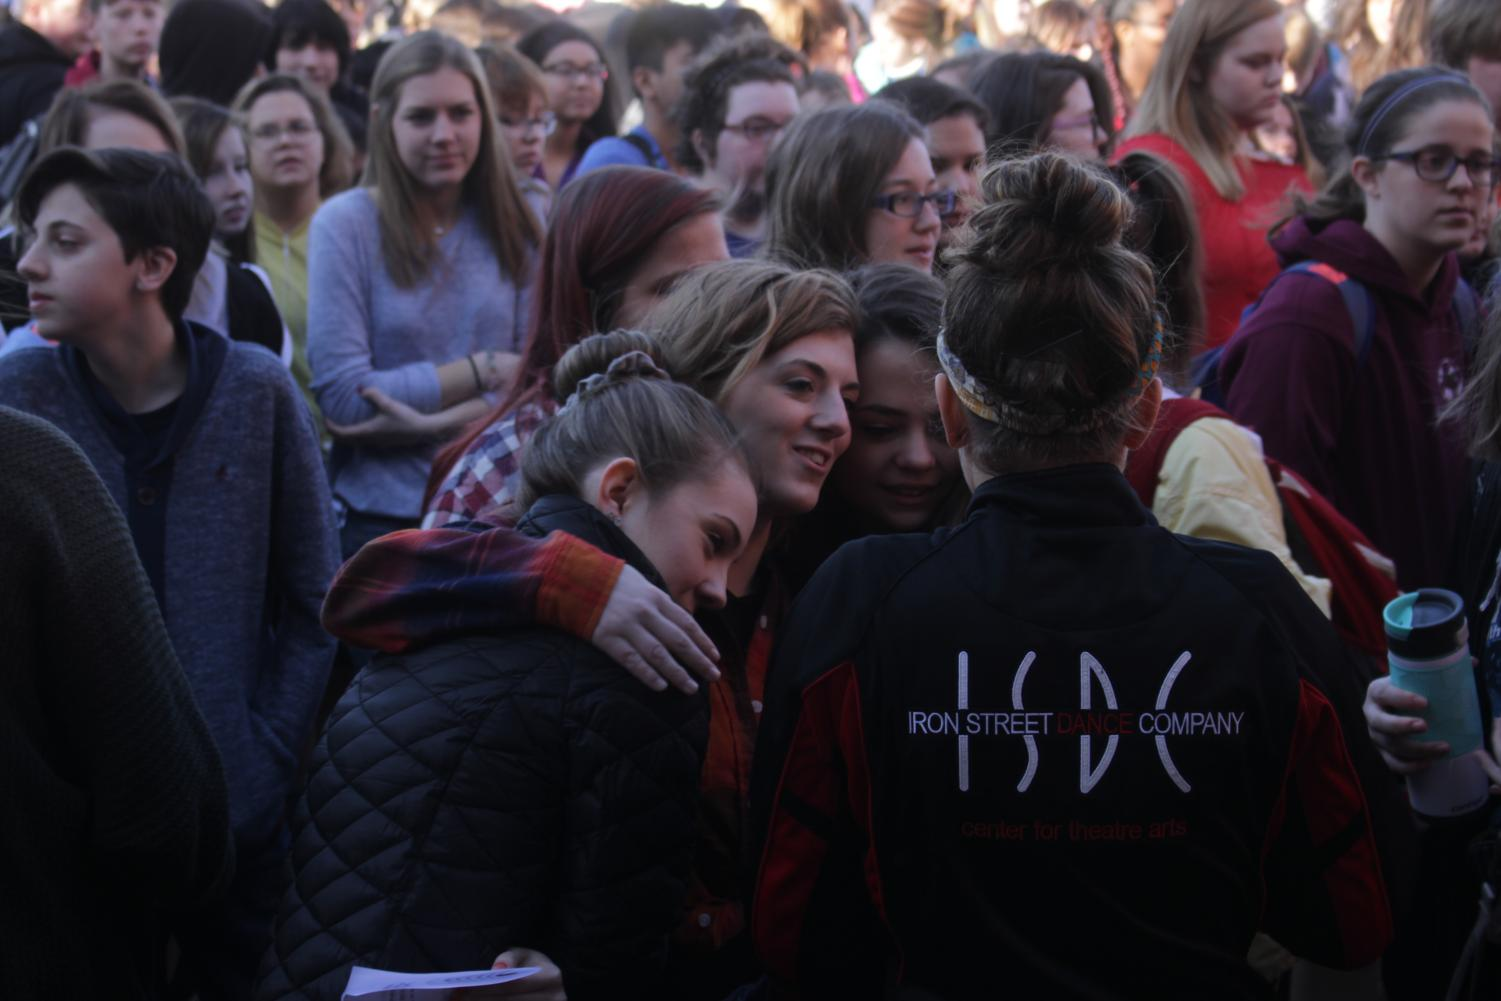 A group of students hug during the speeches and walkout on March 14.